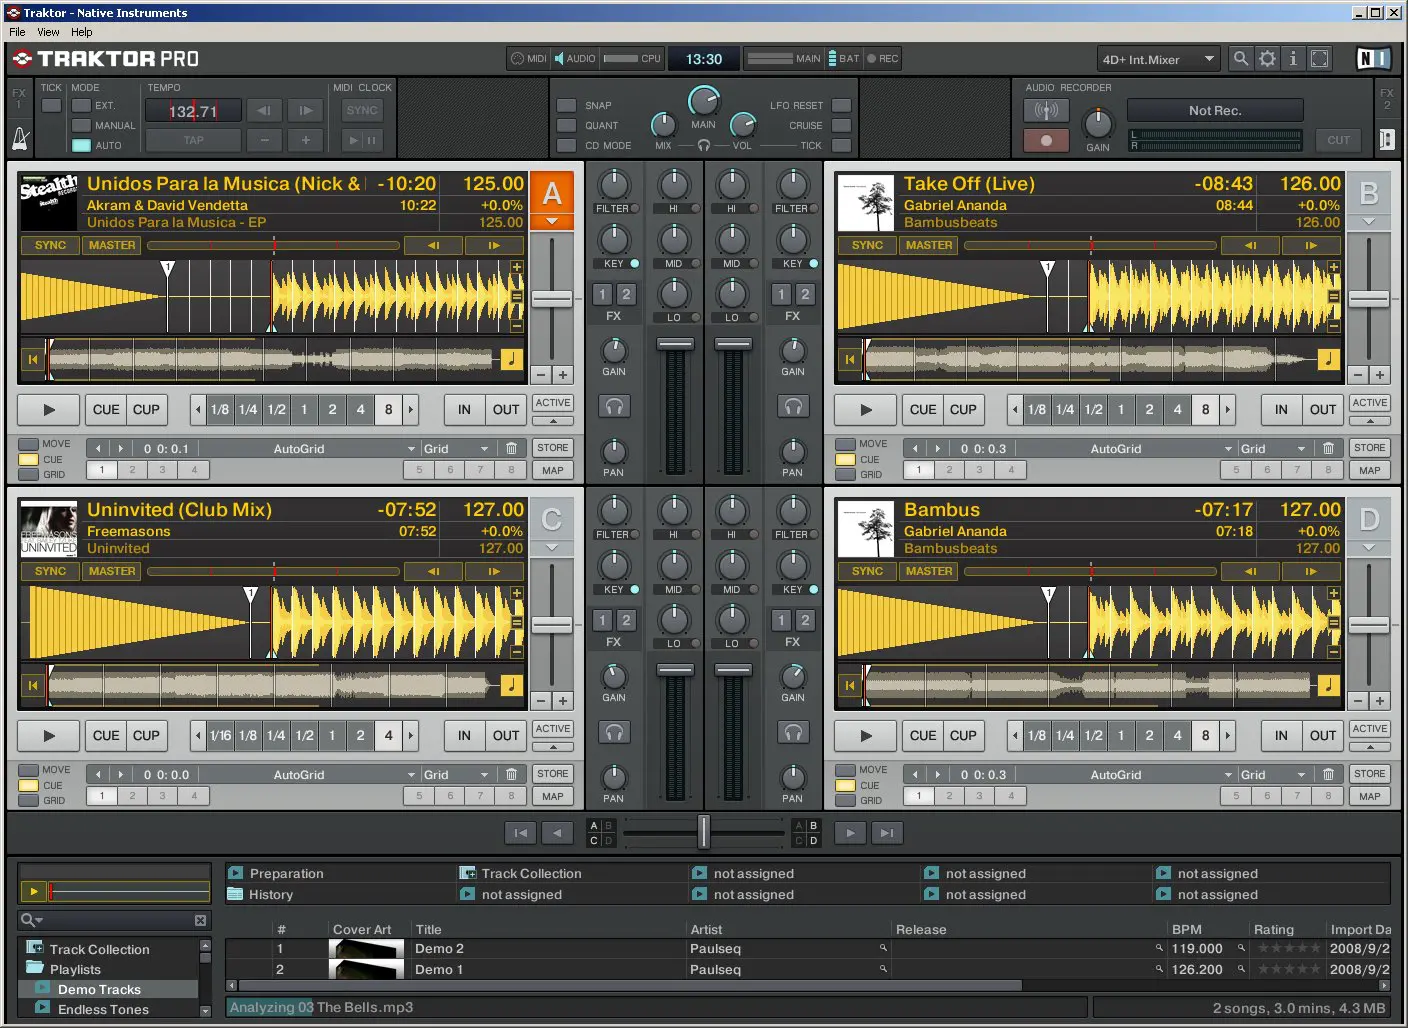 Traktor Pro main view extended